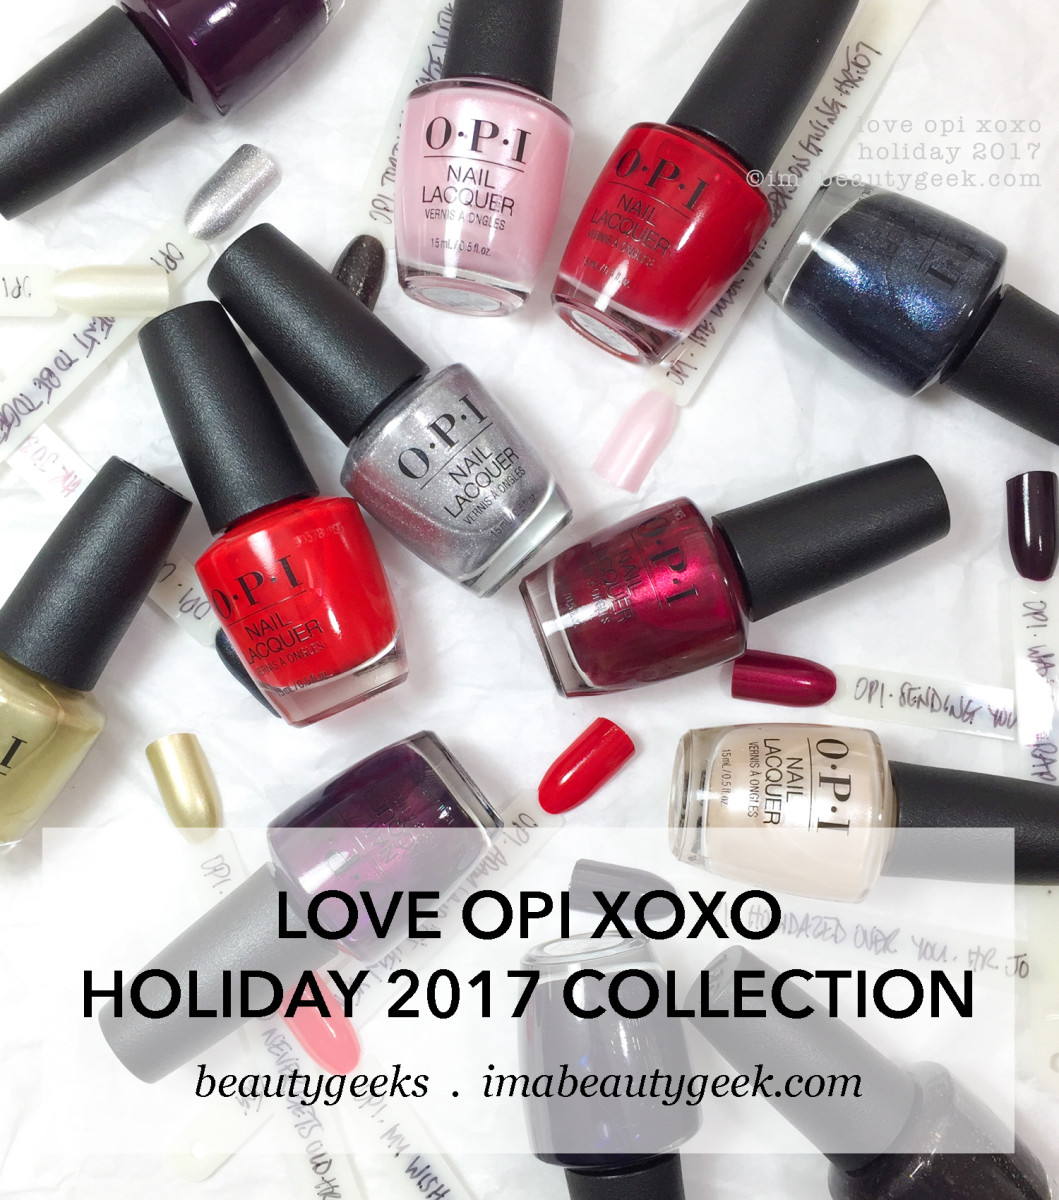 Love OPI XOXO swatches/review holiday 2017 collection-BEAUTYGEEKS